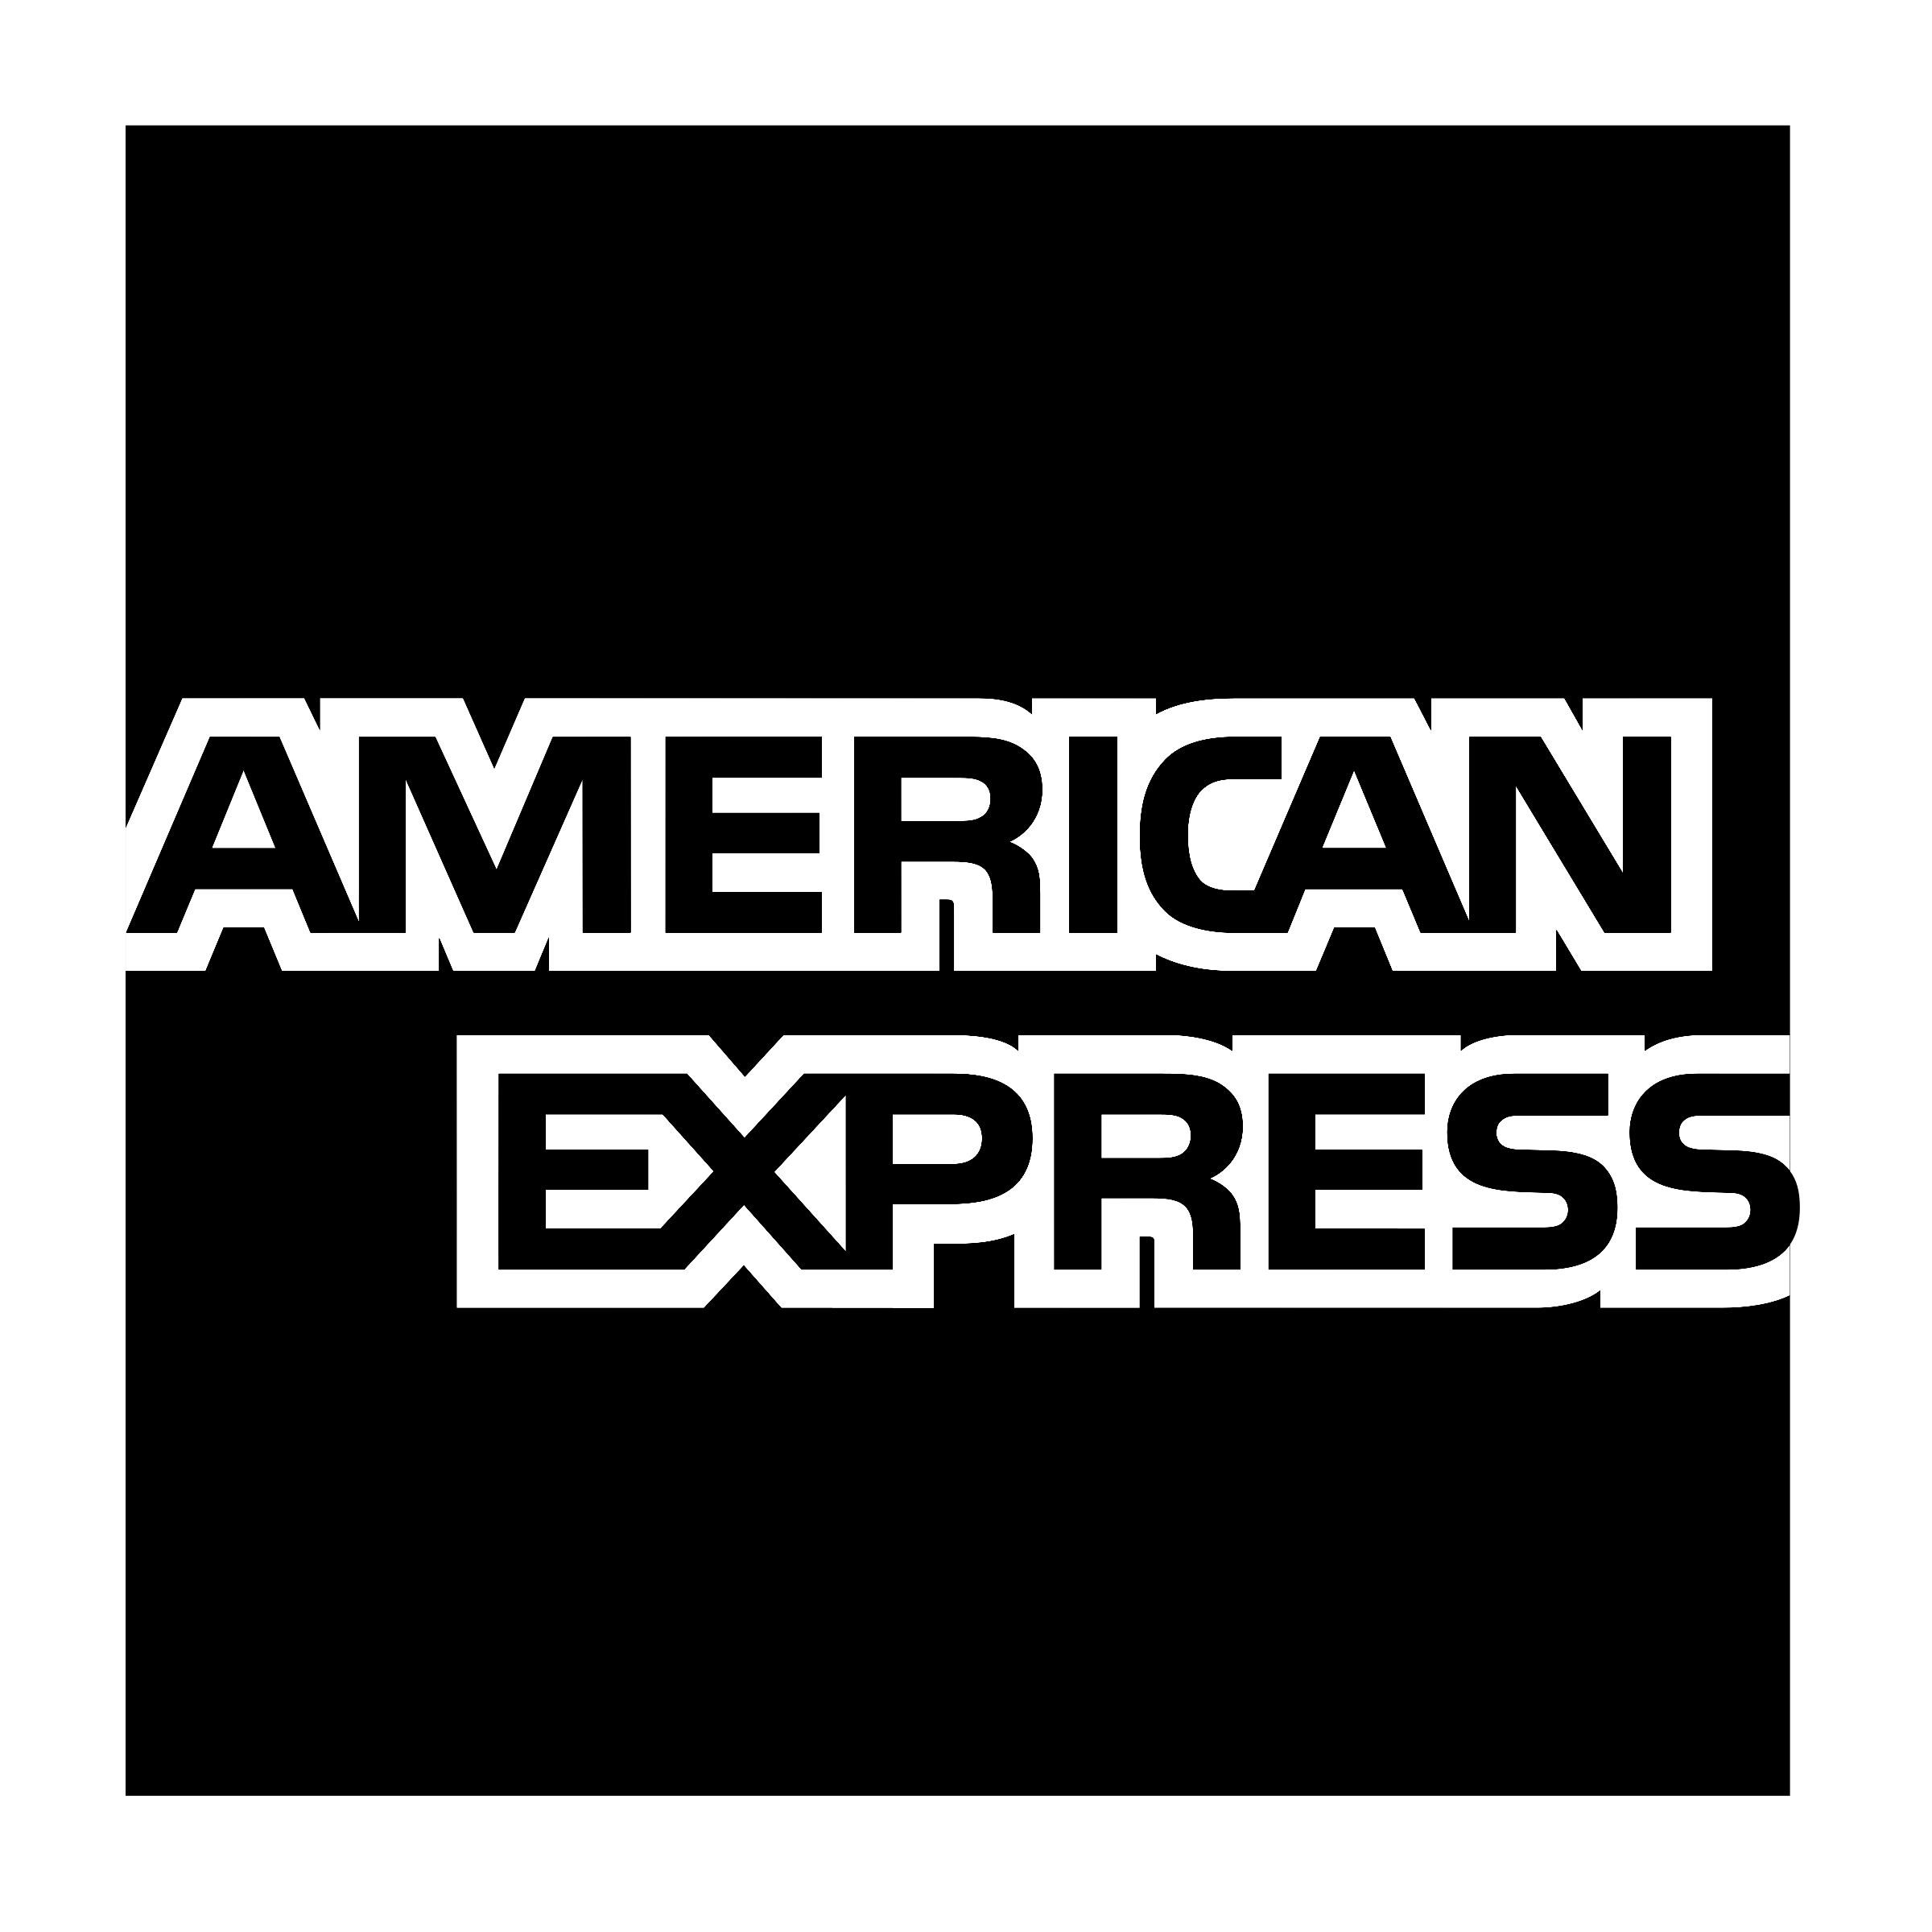 american express logo png transparent svg vector freebie supply rh freebiesupply com american express card logo vector logo american express vectoriel